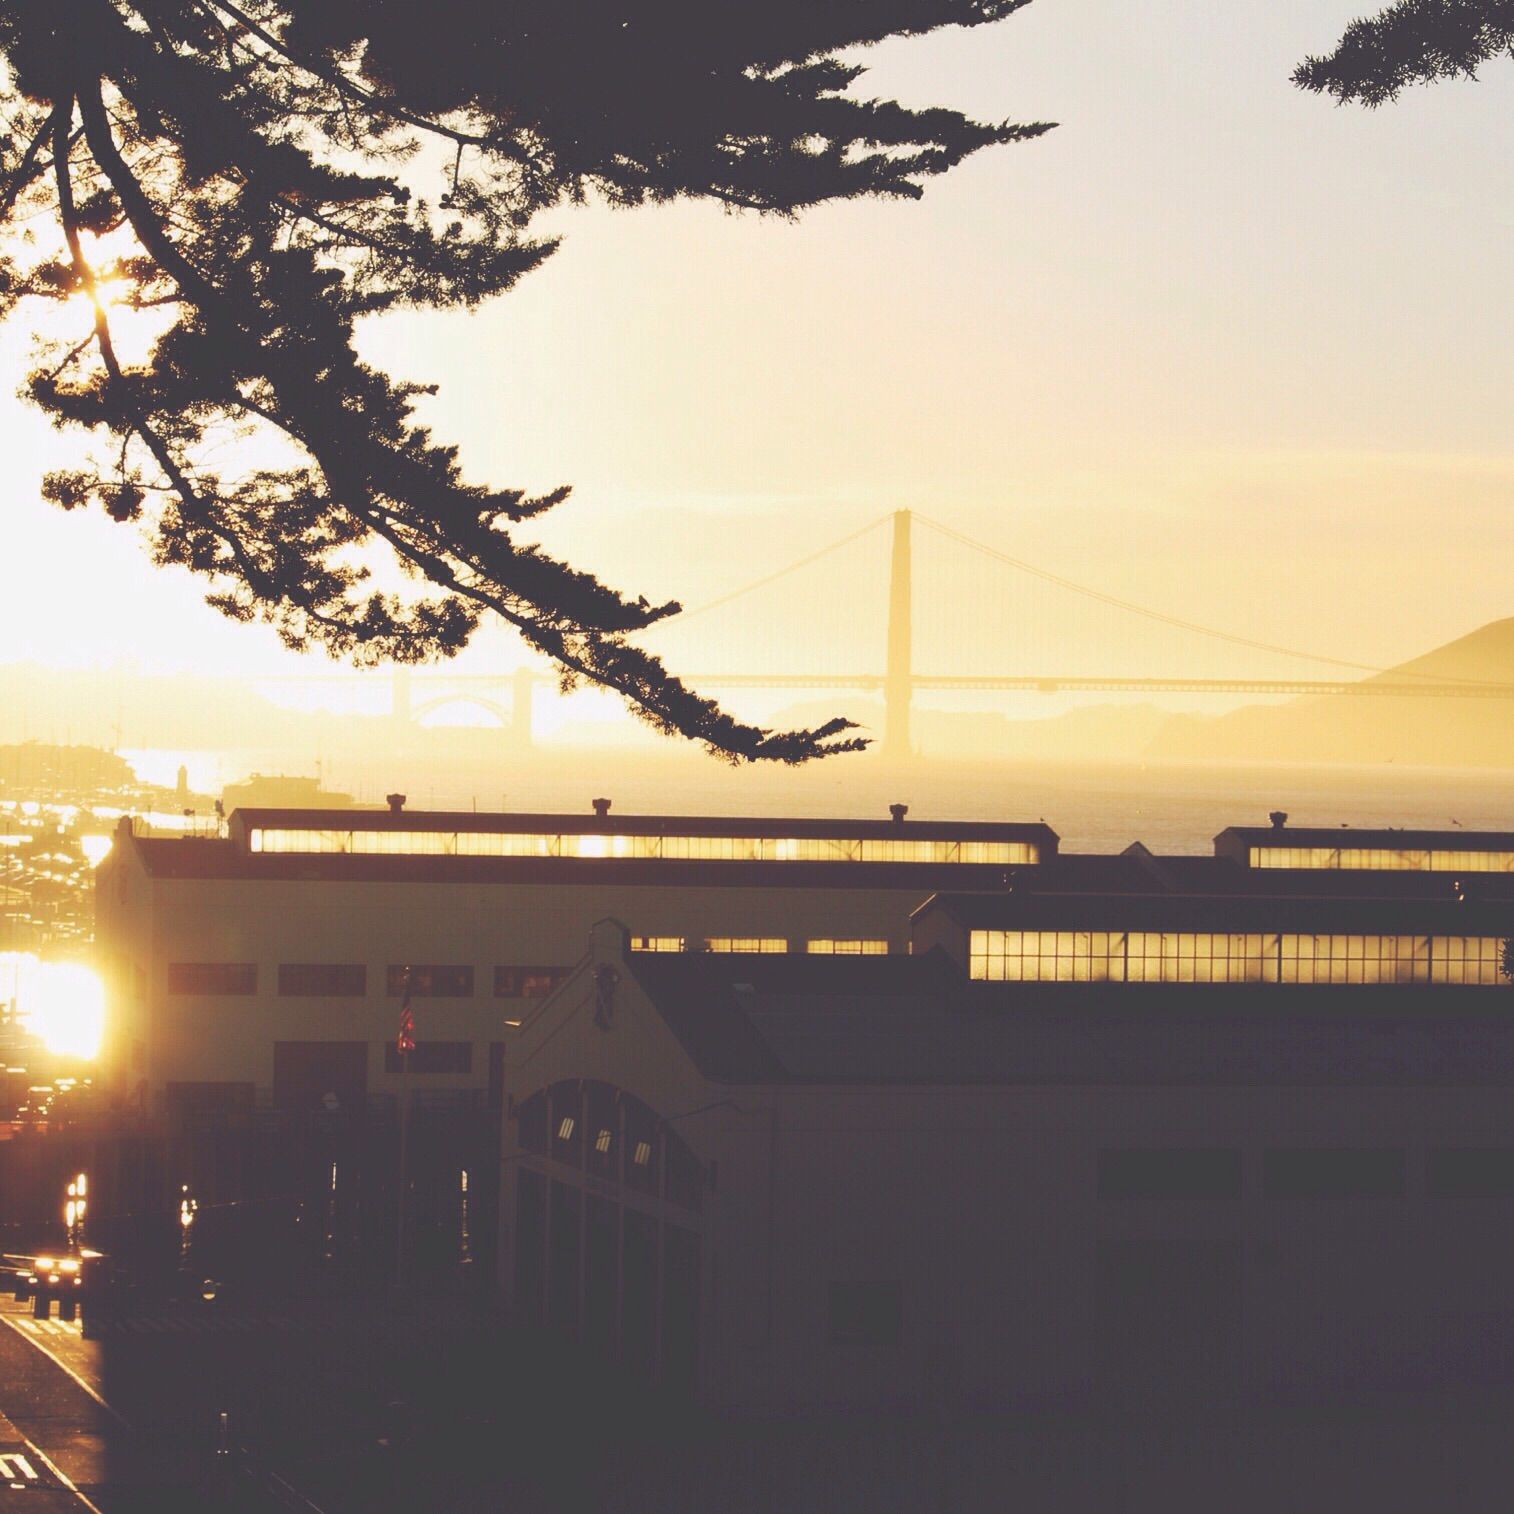 Sunset! View of Golden Gate Bridge from Fort Mason area.